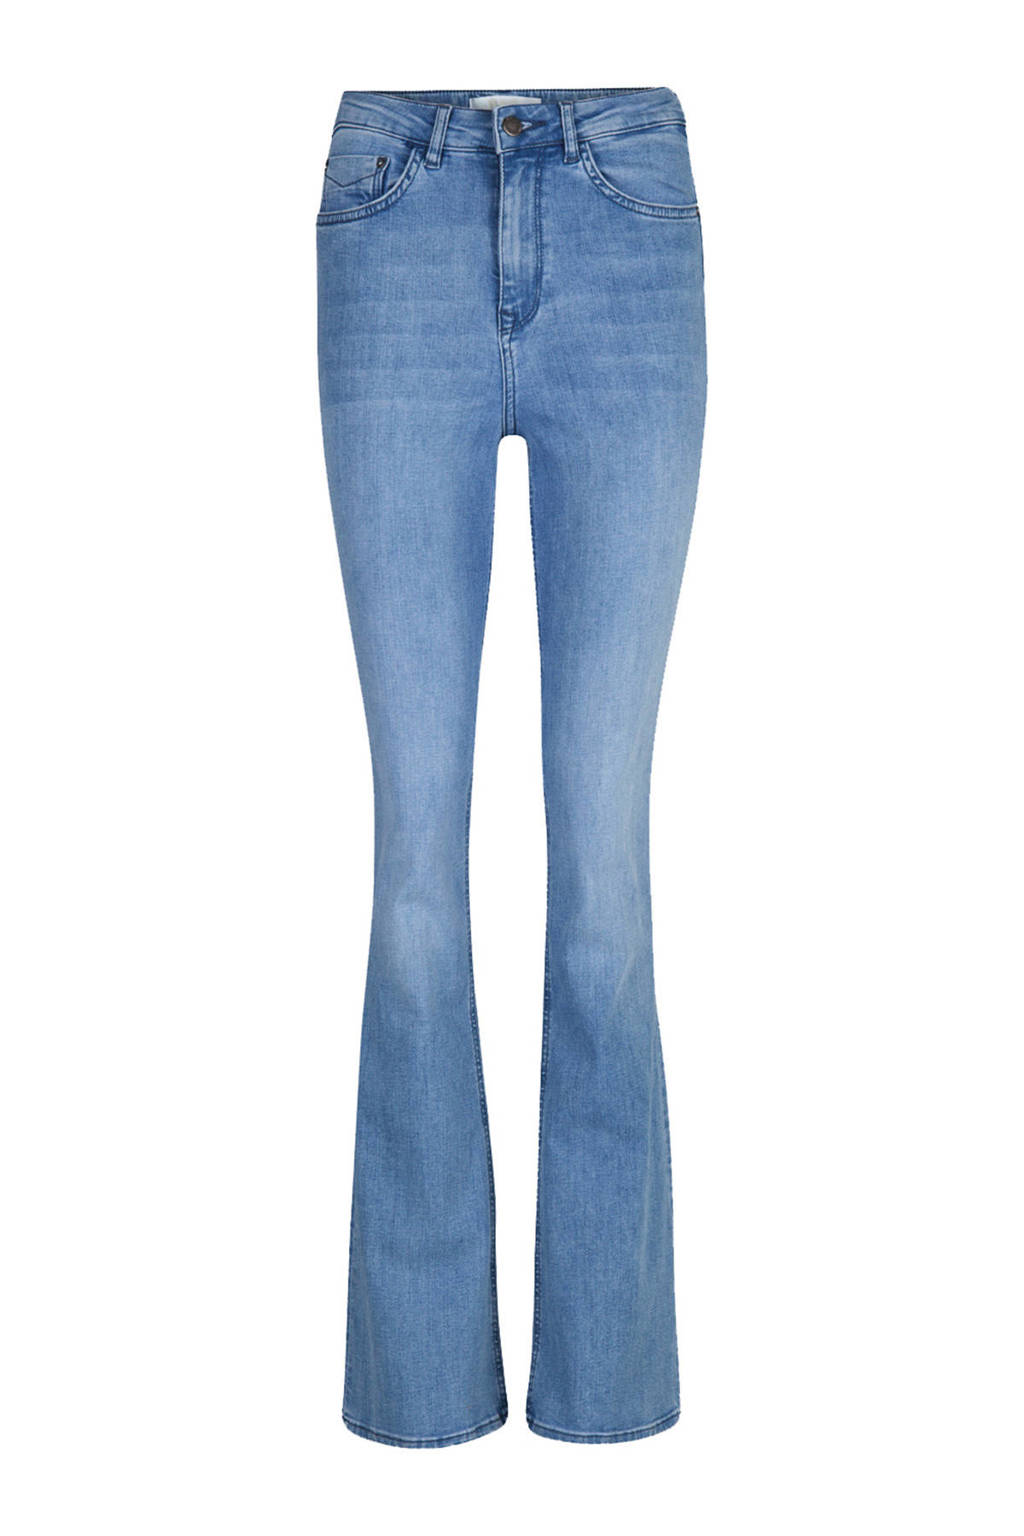 WE Fashion Blue Ridge flared jeans denim, Lichtblauw